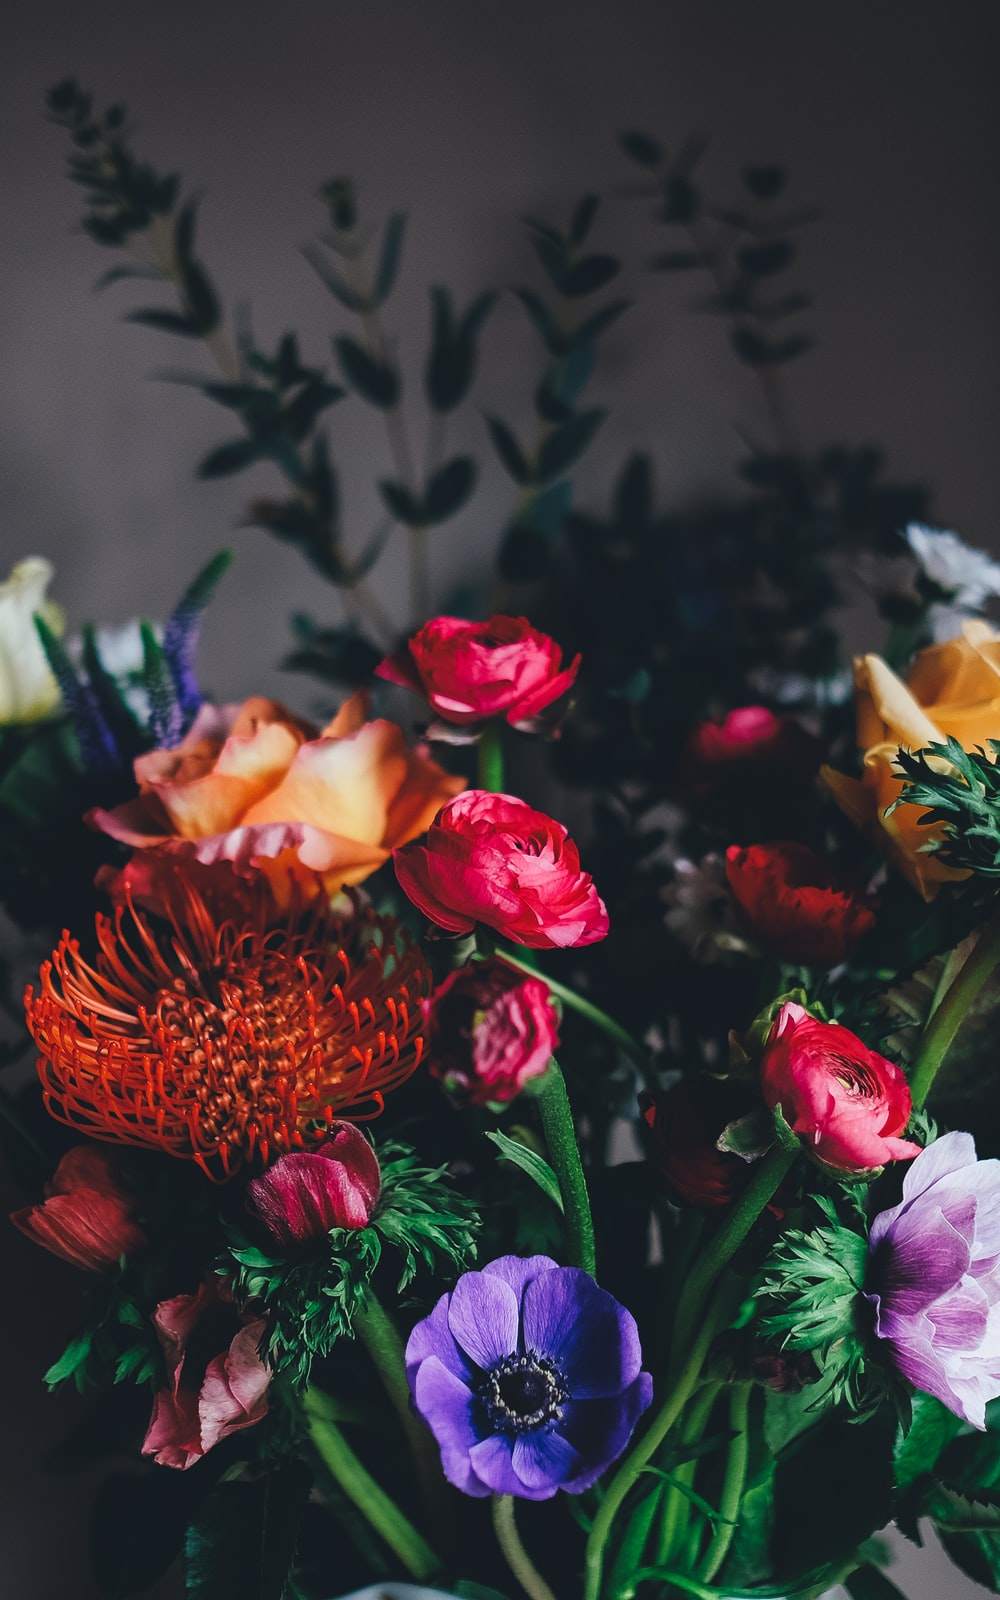 27+ Roses Images | Download Free Images on Unsplash